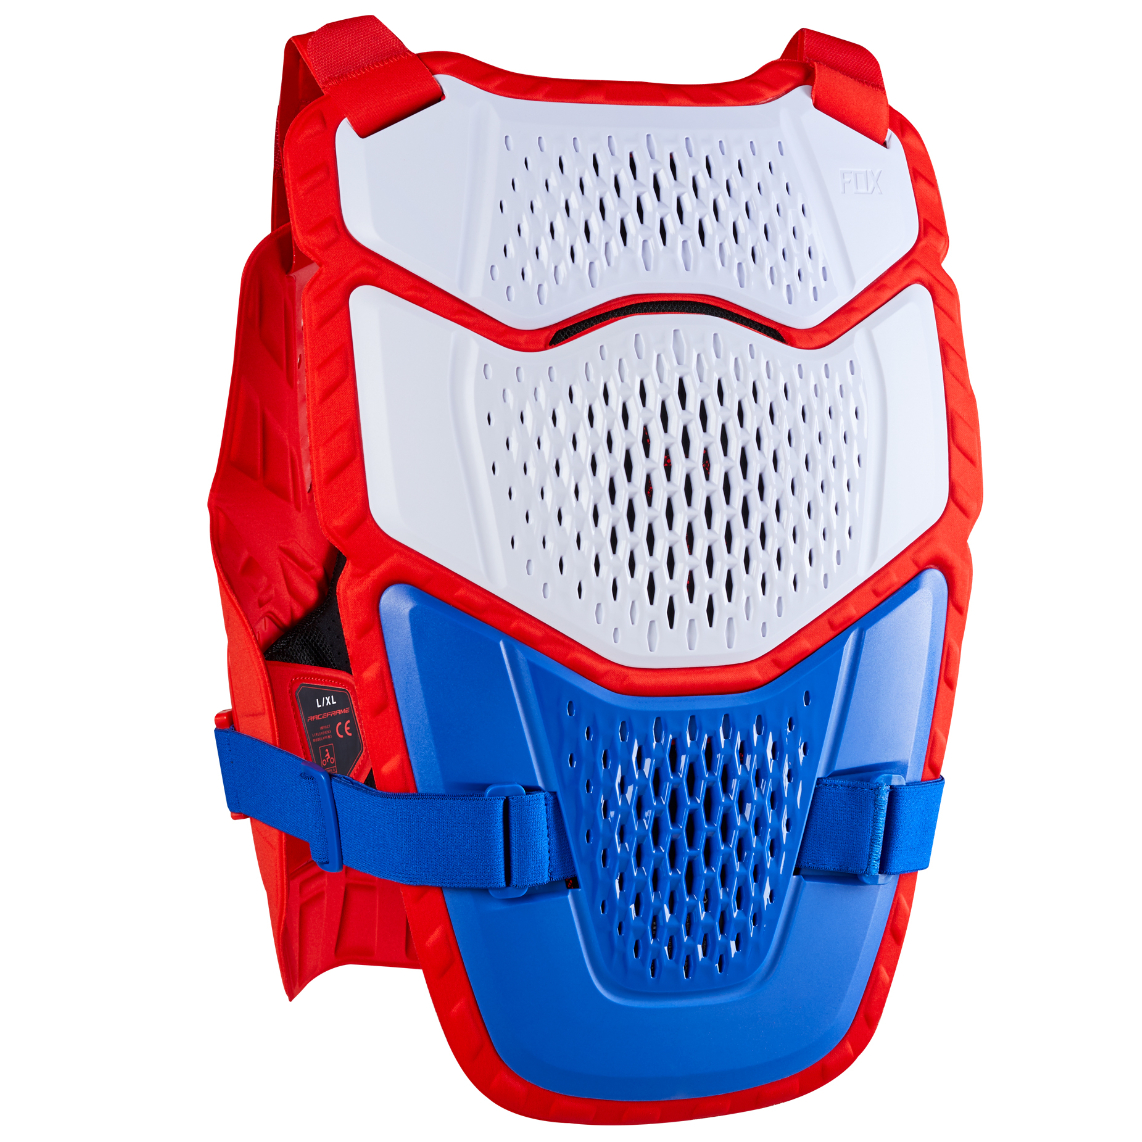 2021 fox raceframe impact guard blue/red - 24865 149 2